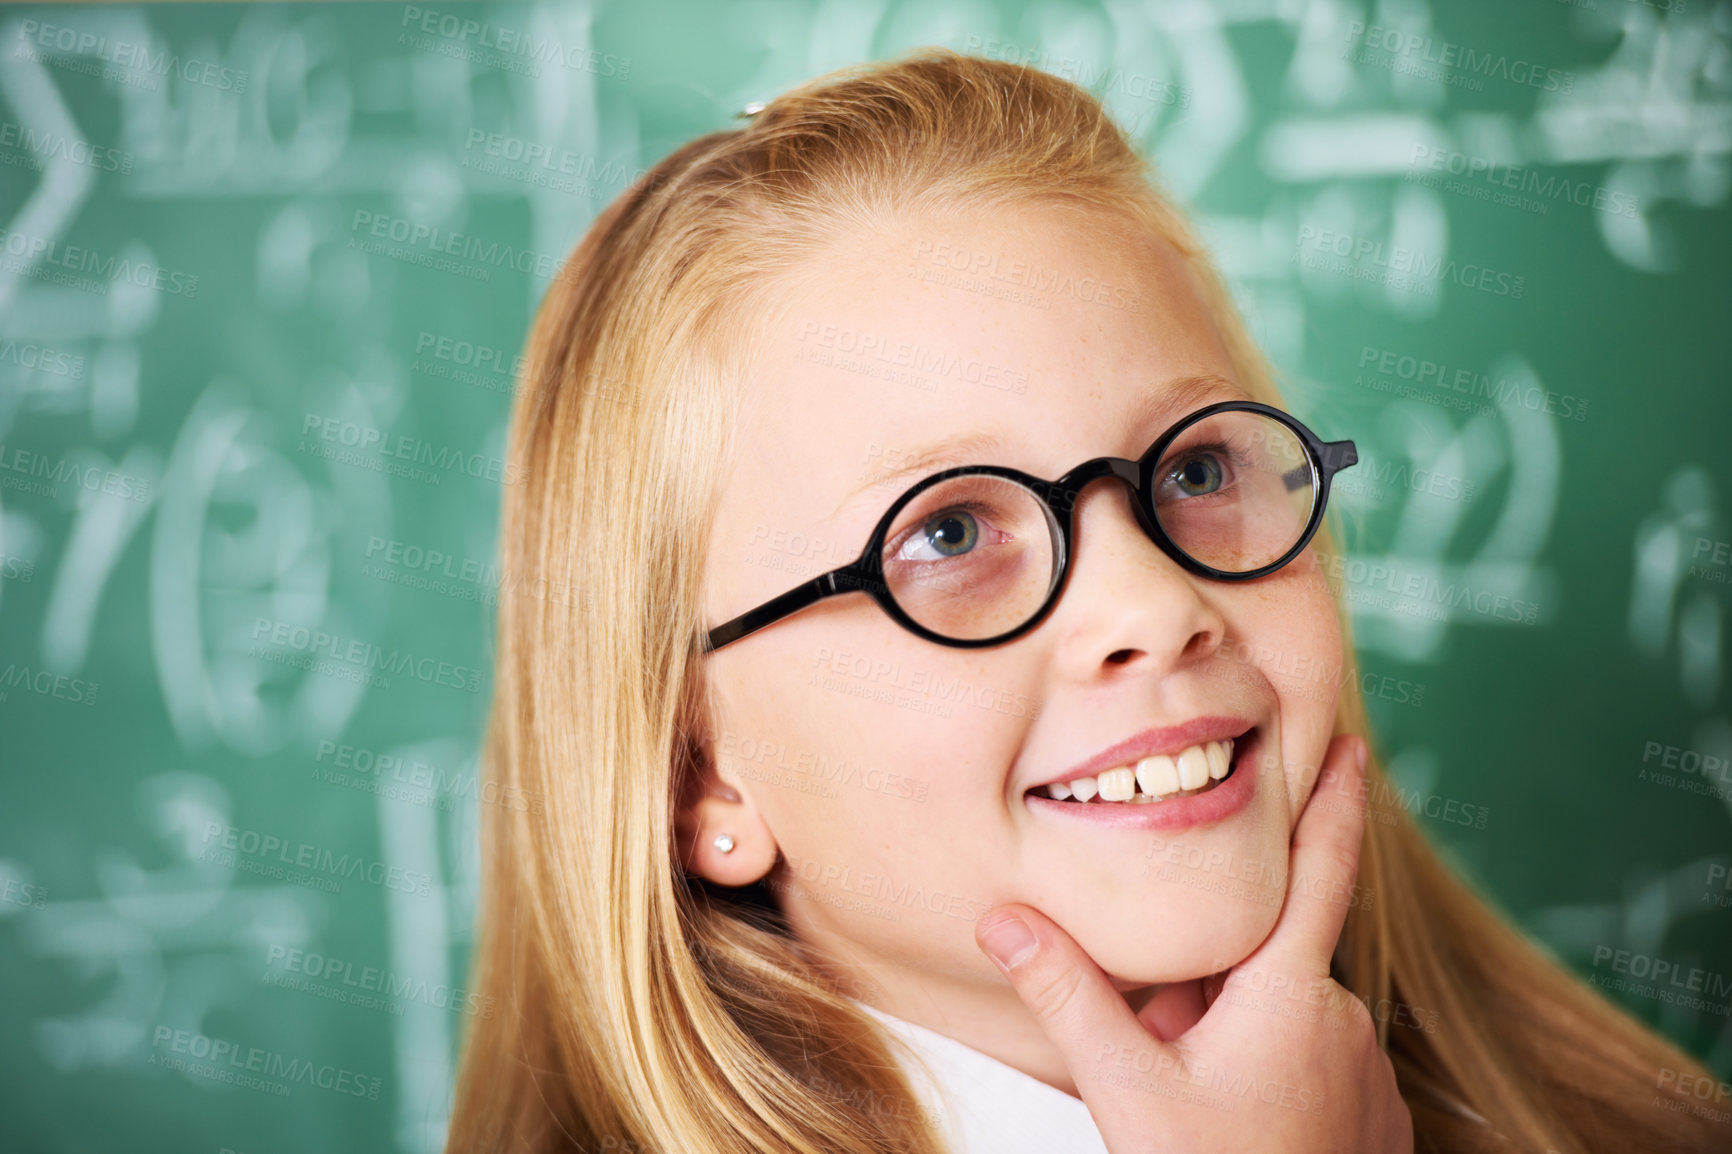 Buy stock photo A cute blonde girl looking pensive in class